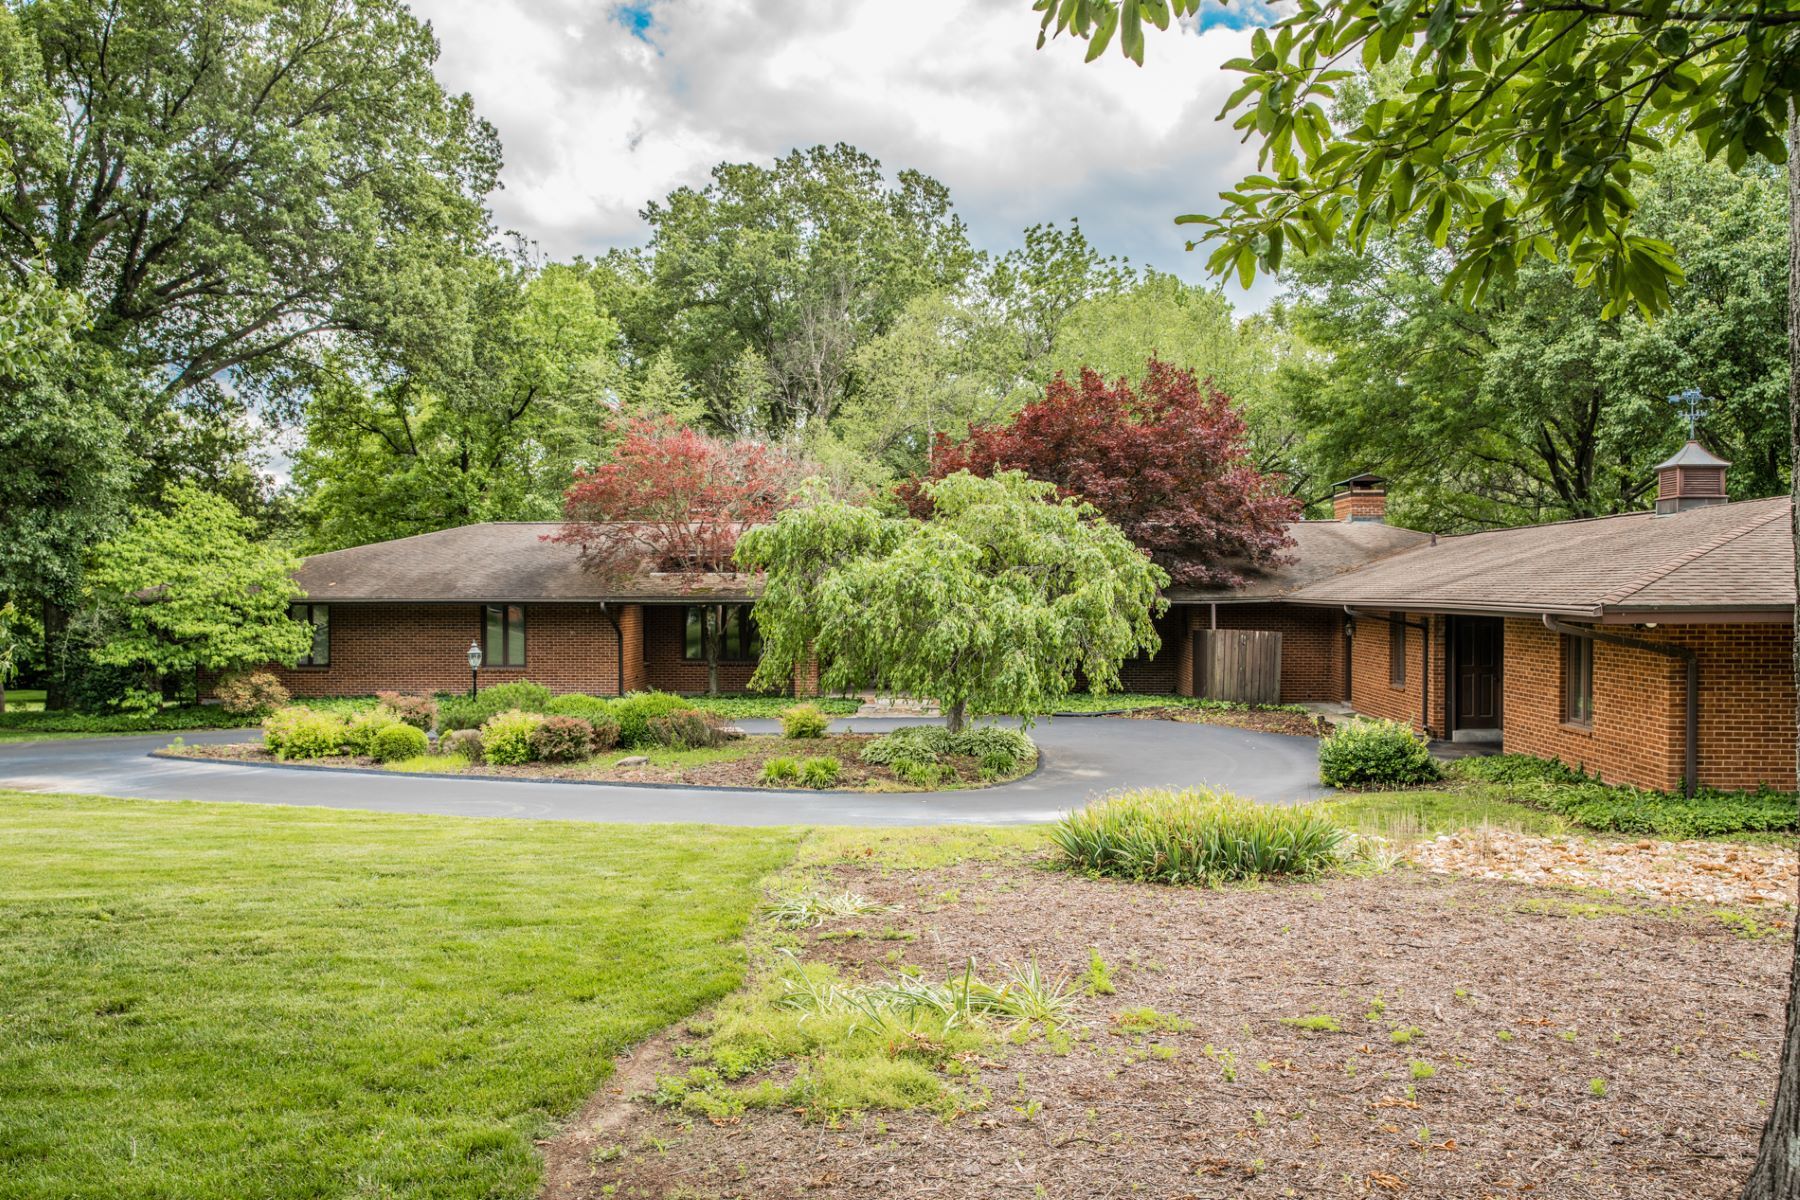 Single Family Home for Rent at 10166 Winding Ridge Road Ladue, Missouri 63124 United States